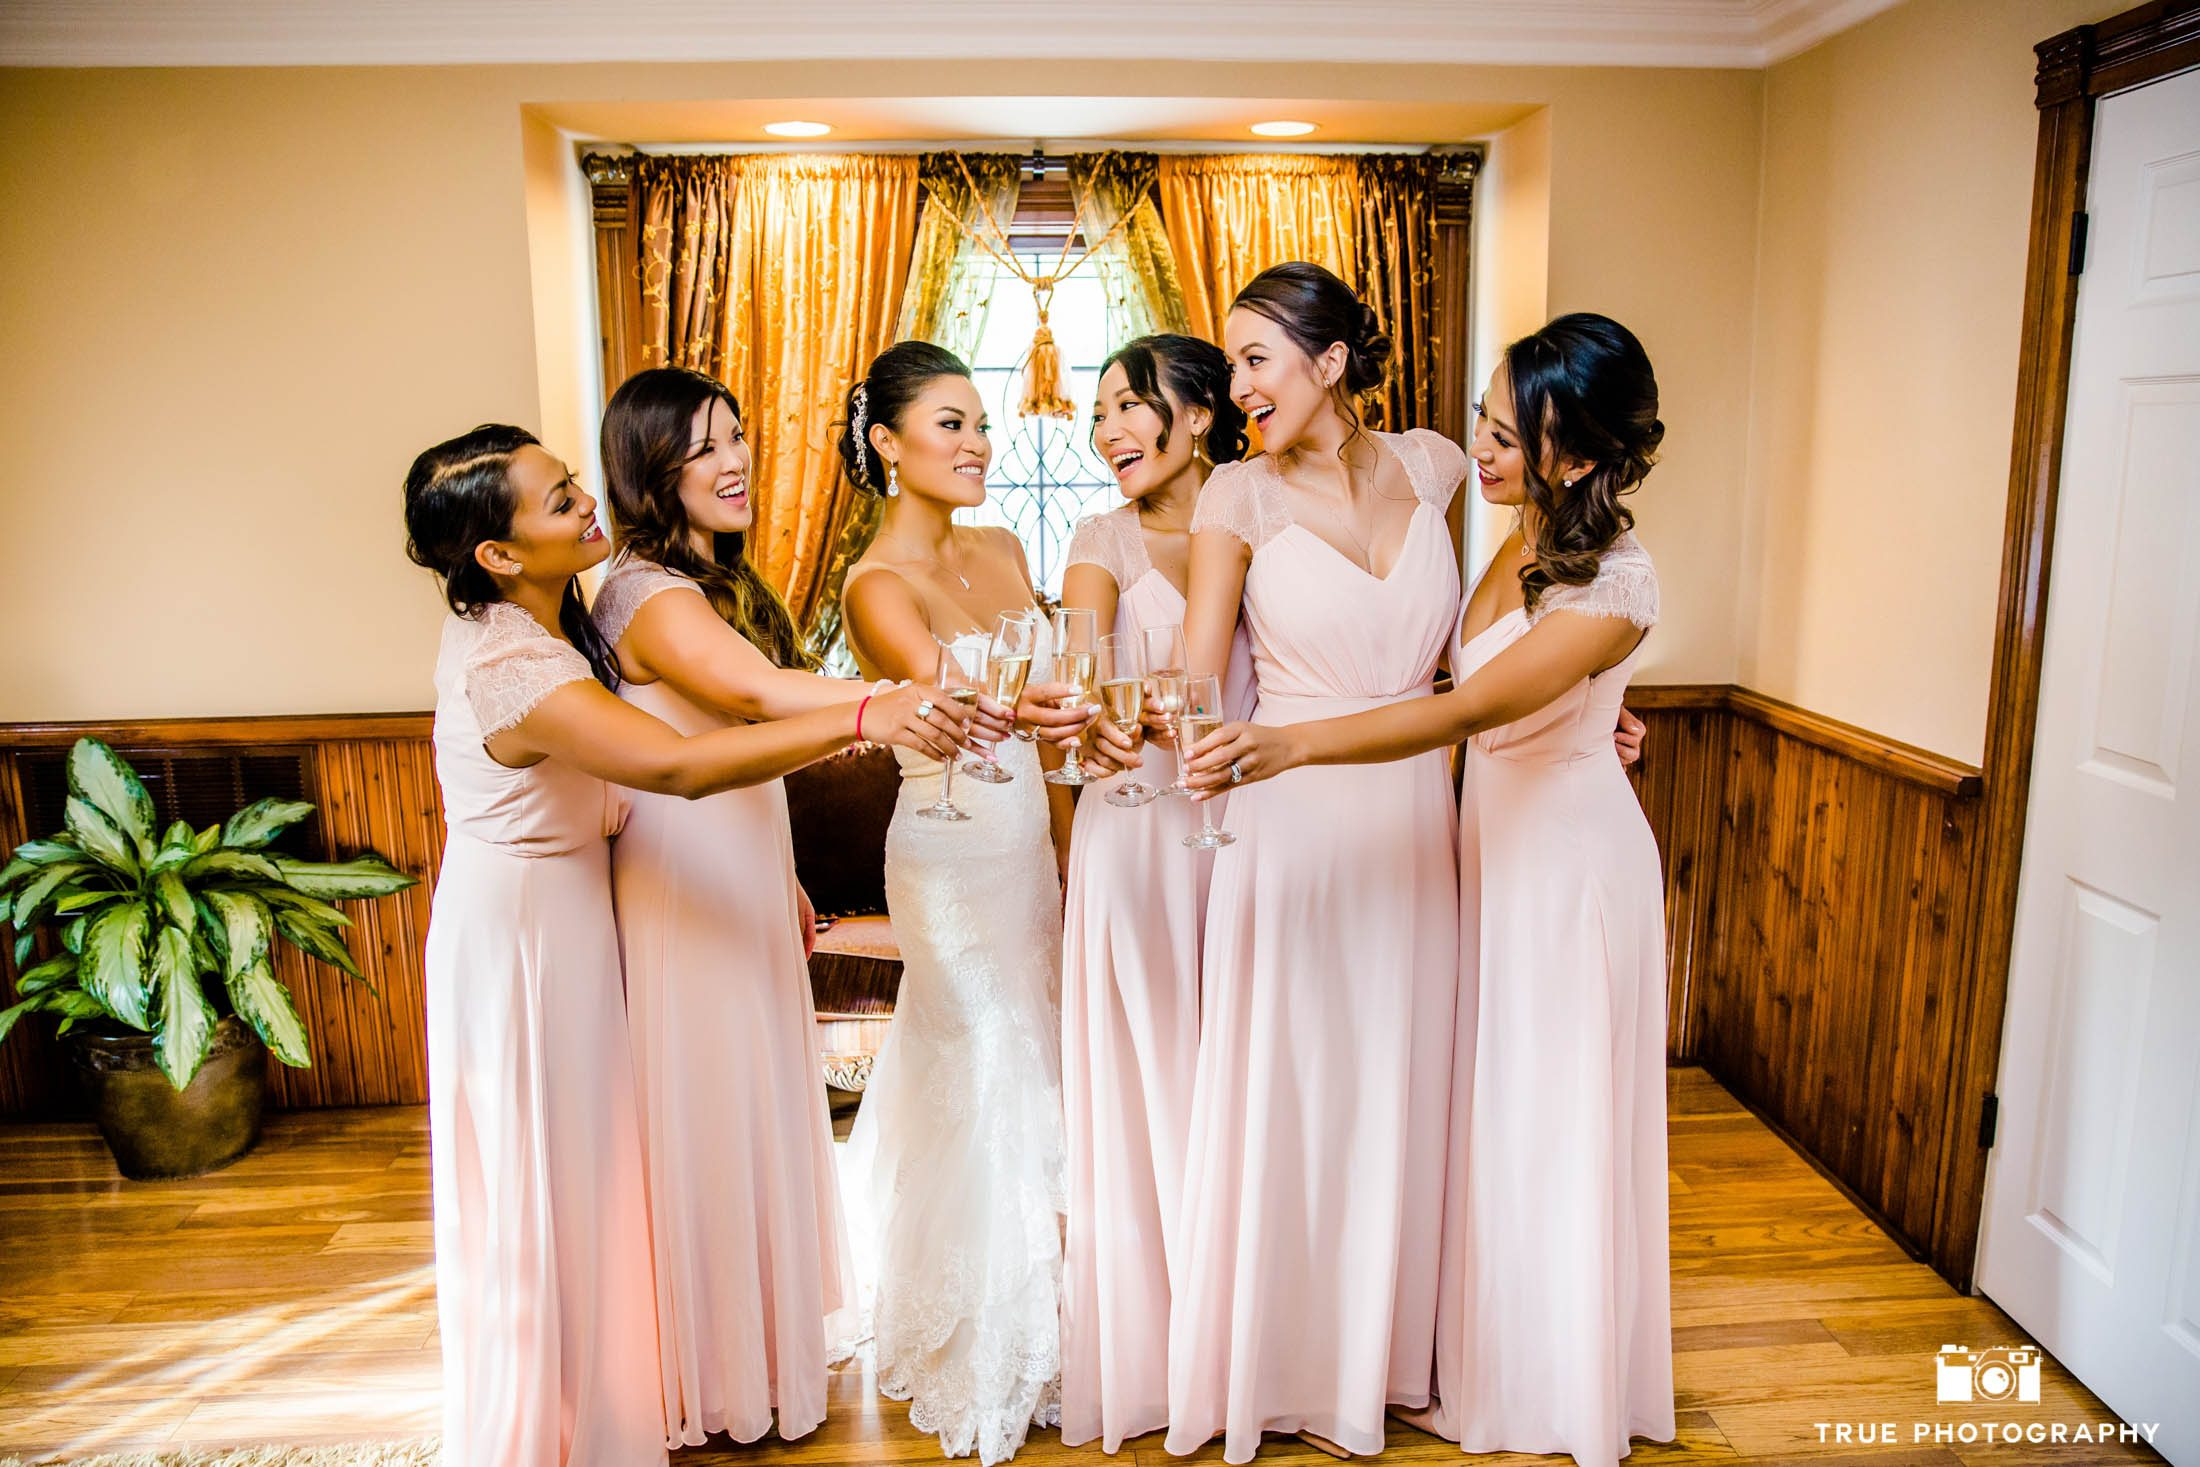 Bridemaids toast the Bride to celebrate her special day.